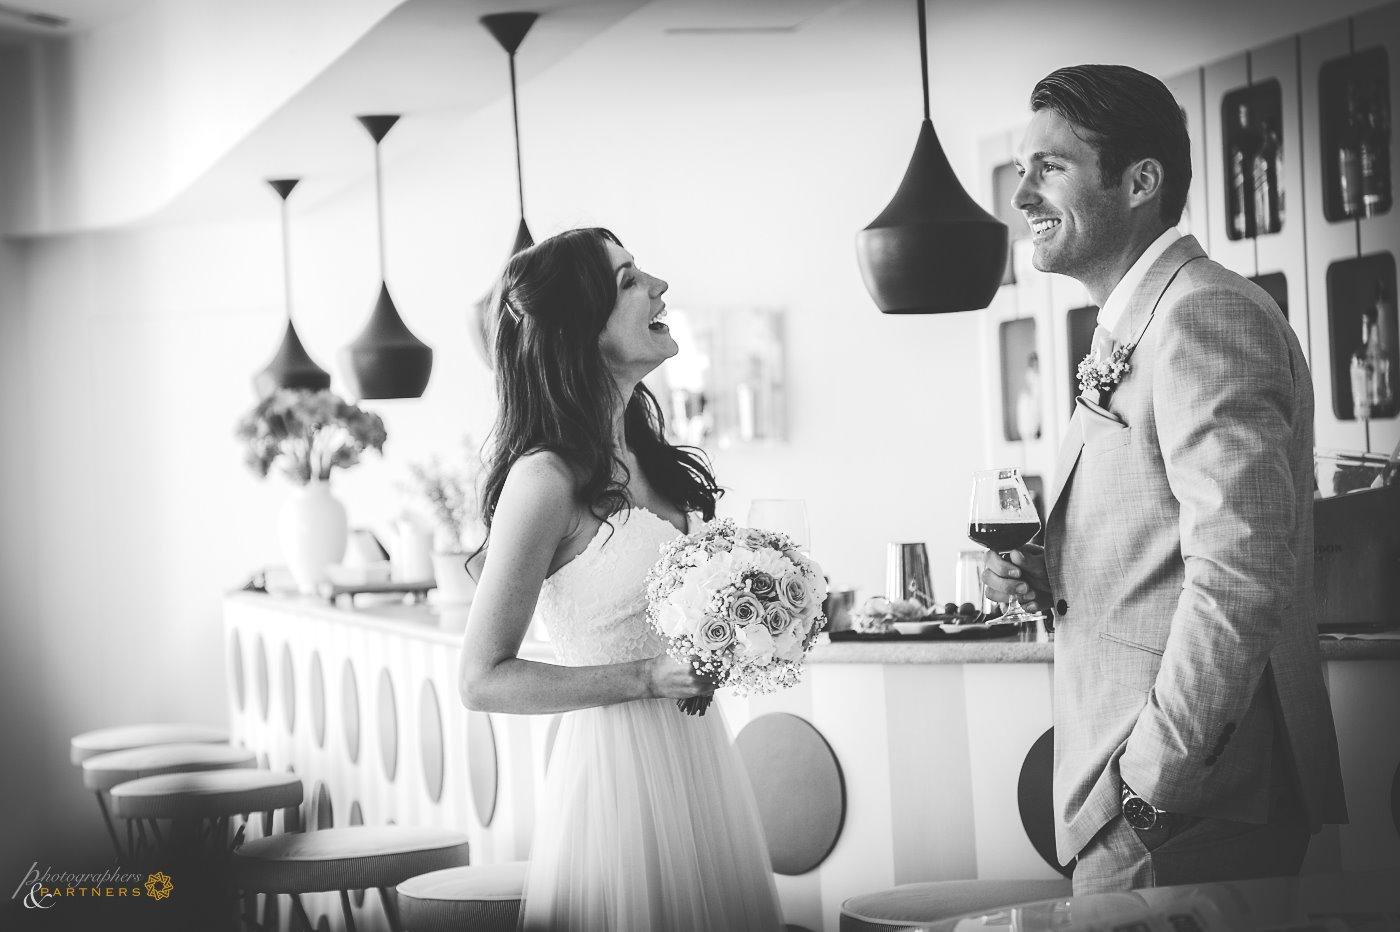 photography_weddings_capri_04.jpg